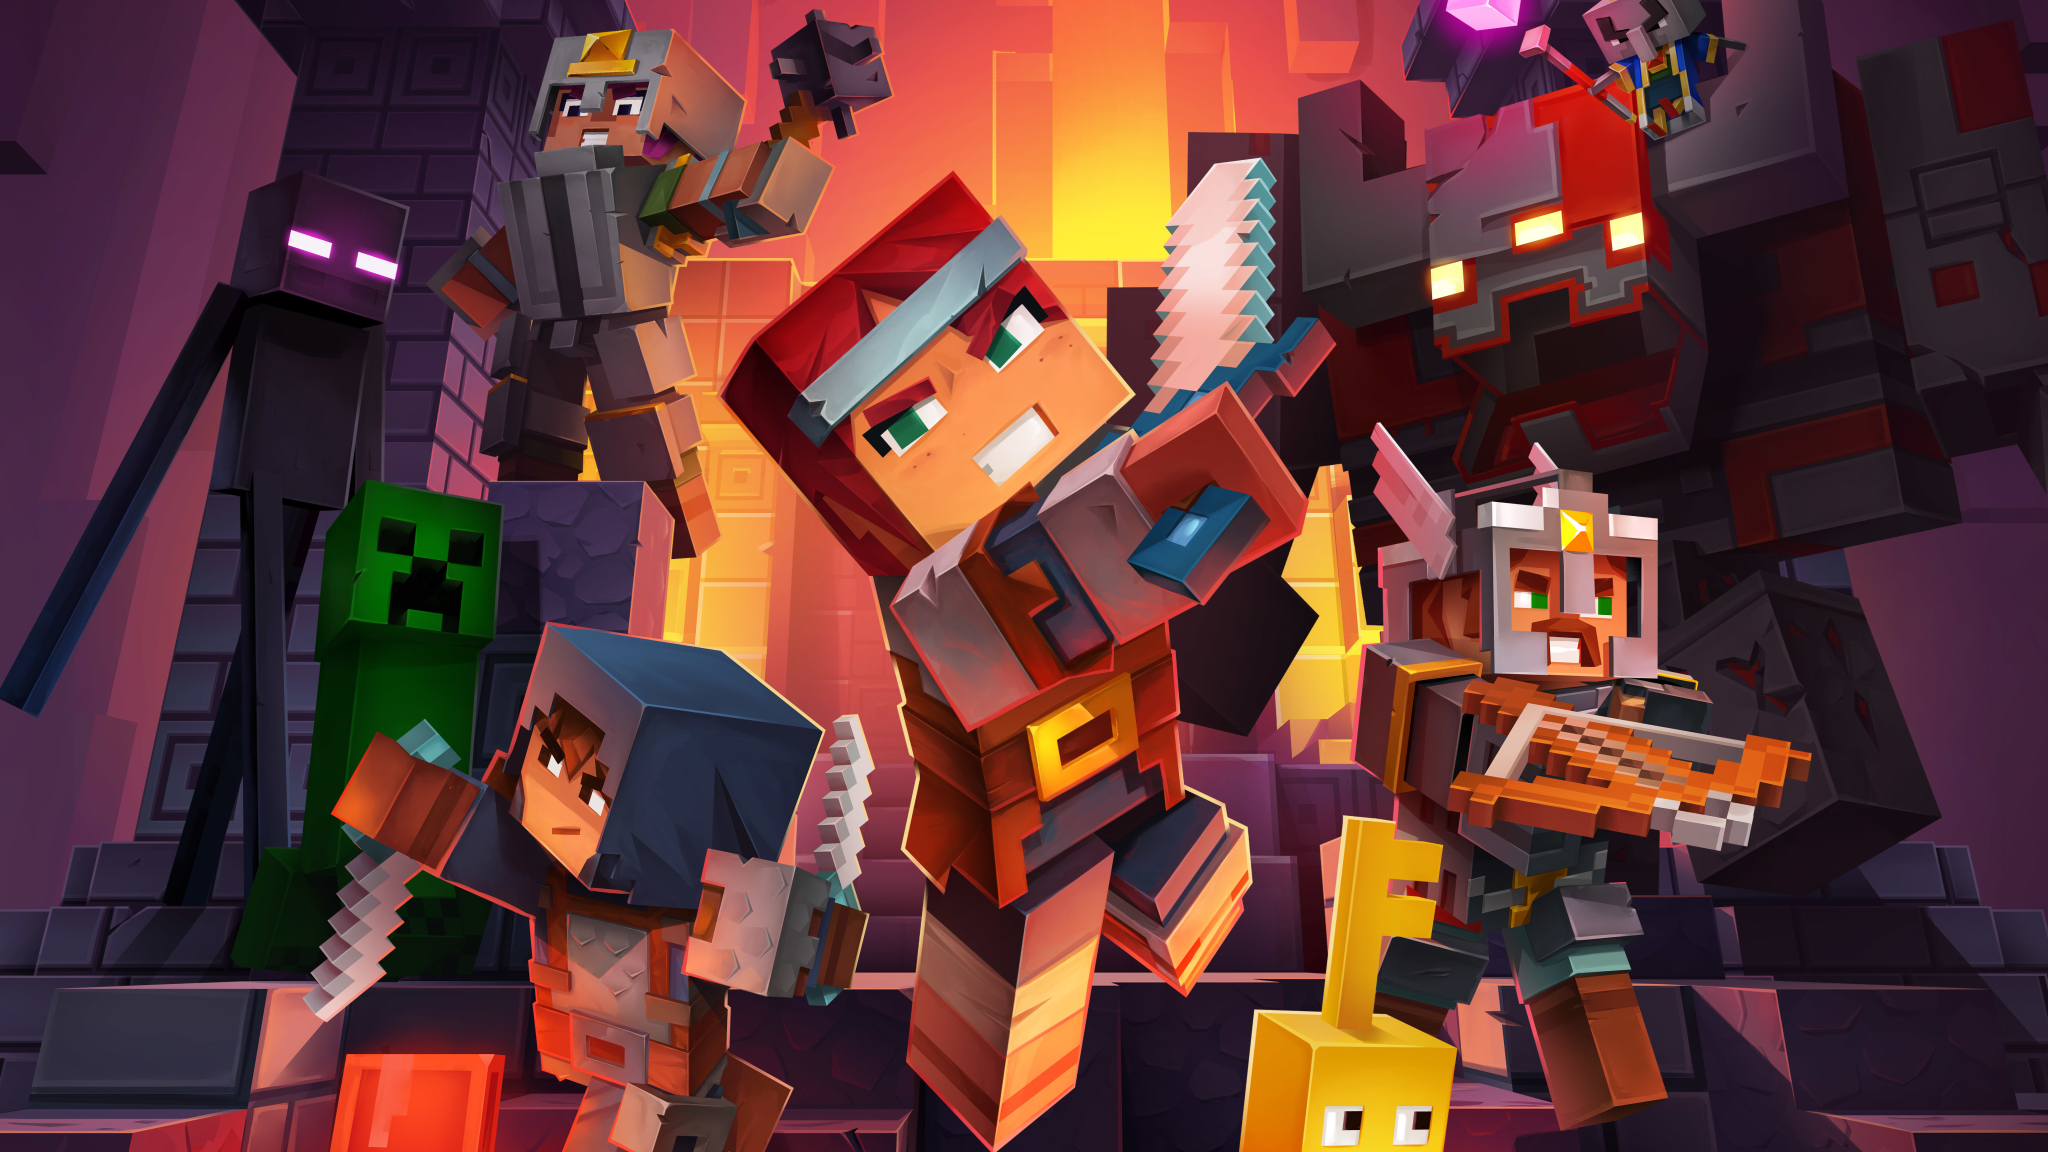 2048x1152 Minecraft Dungeons 2048x1152 Resolution Wallpaper